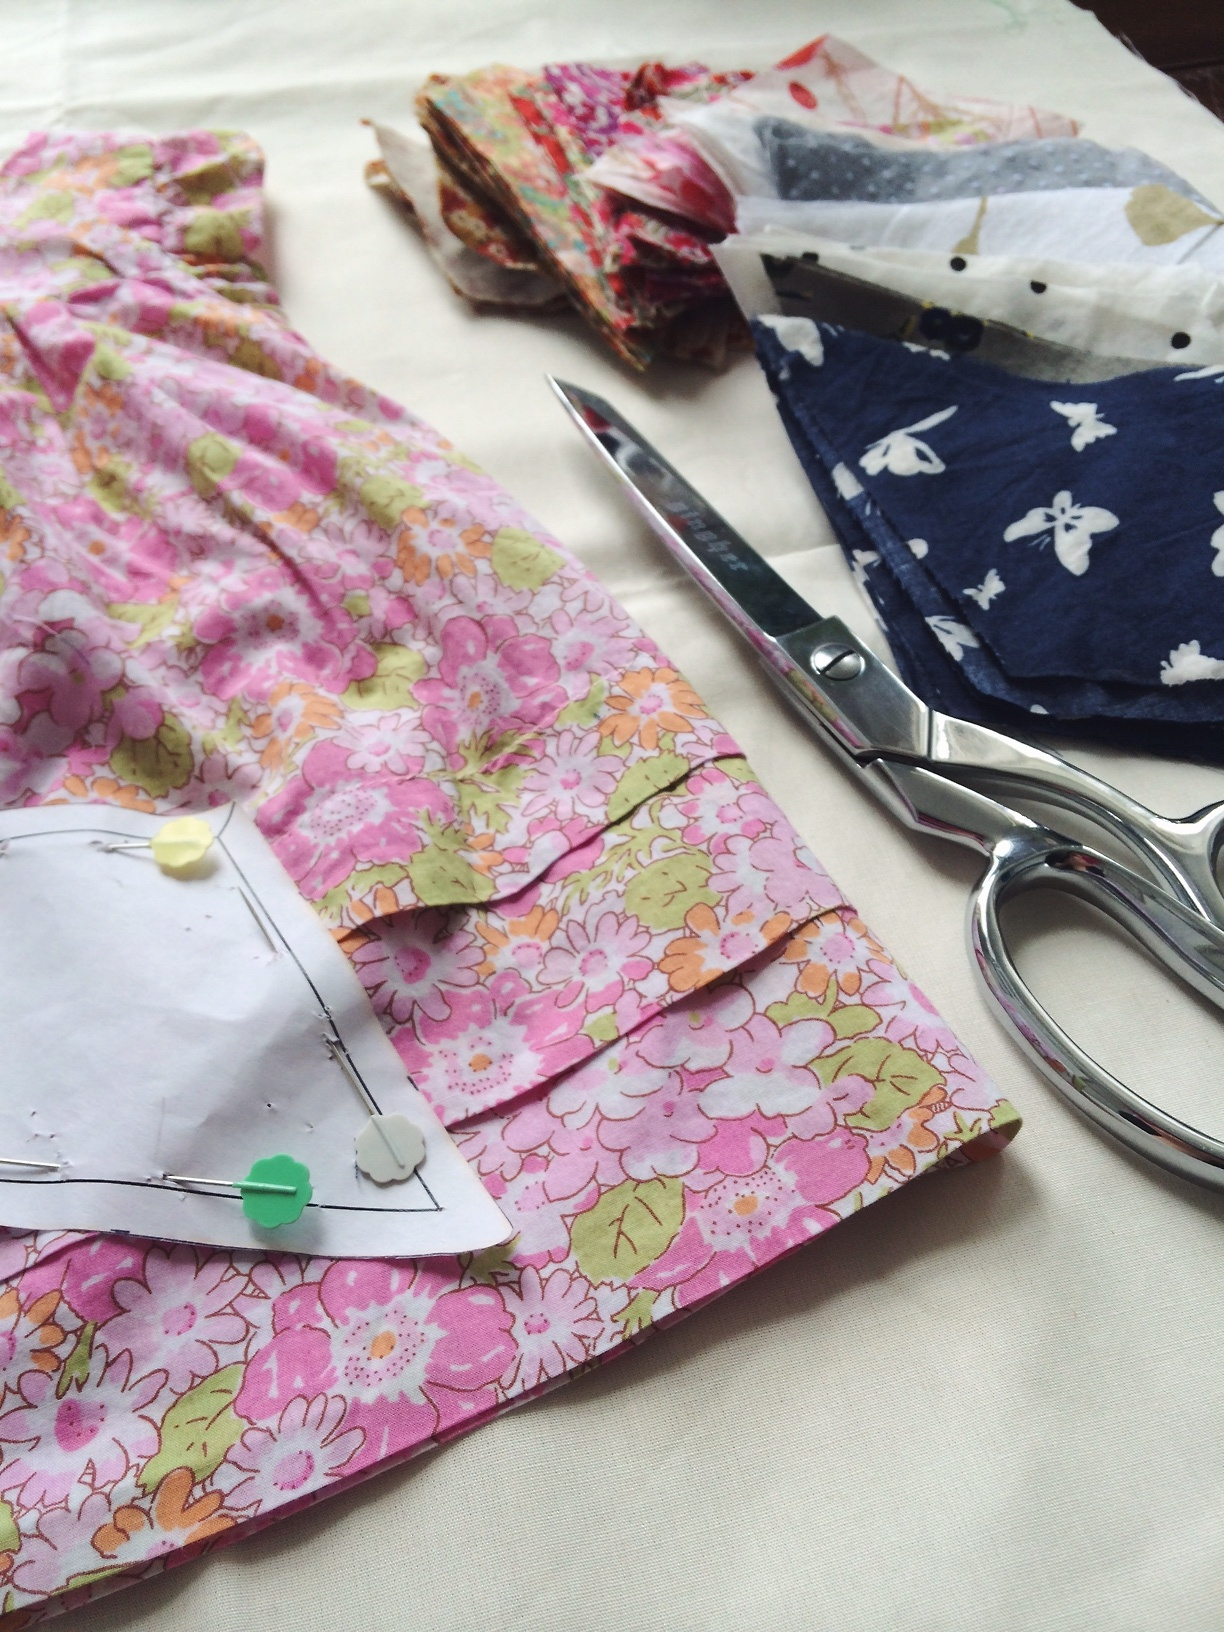 Cutting the most beautiful baby clothes to make a special quilt.